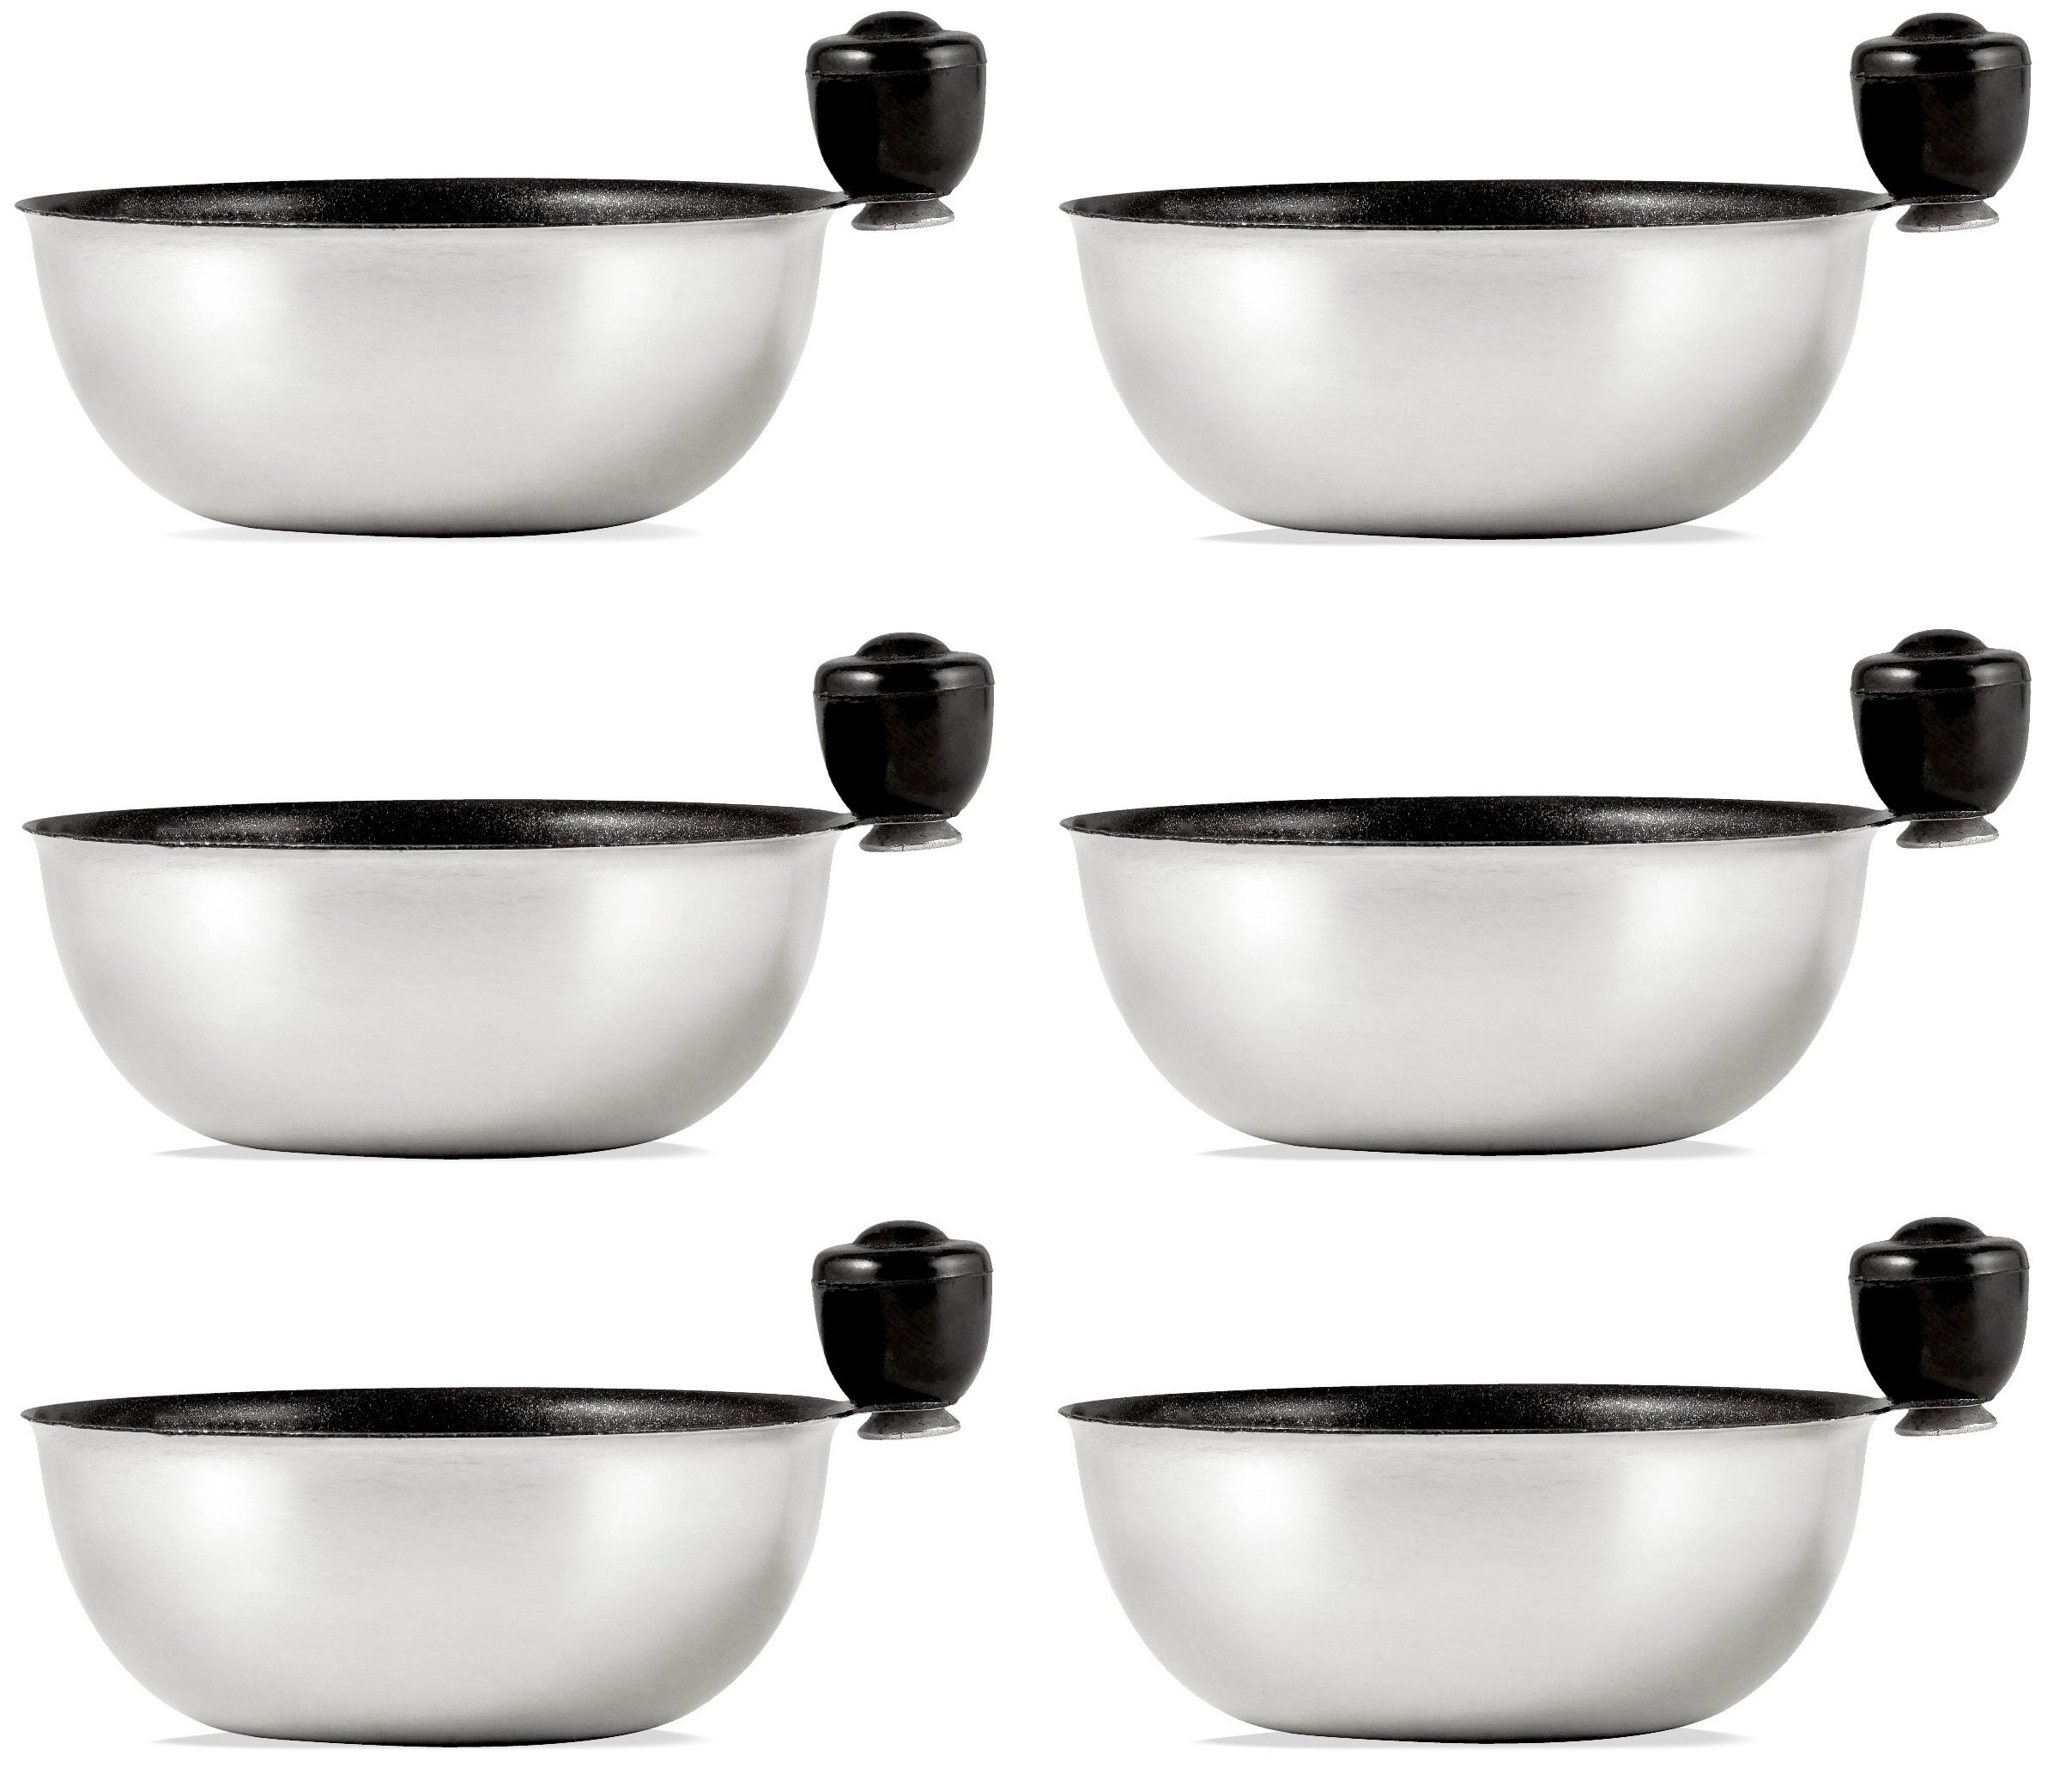 Eggssentials Egg Poacher Replacement Spare Stainless Steel Anti-Stick PFOA Free Individual Removable Poaching Cups (6)